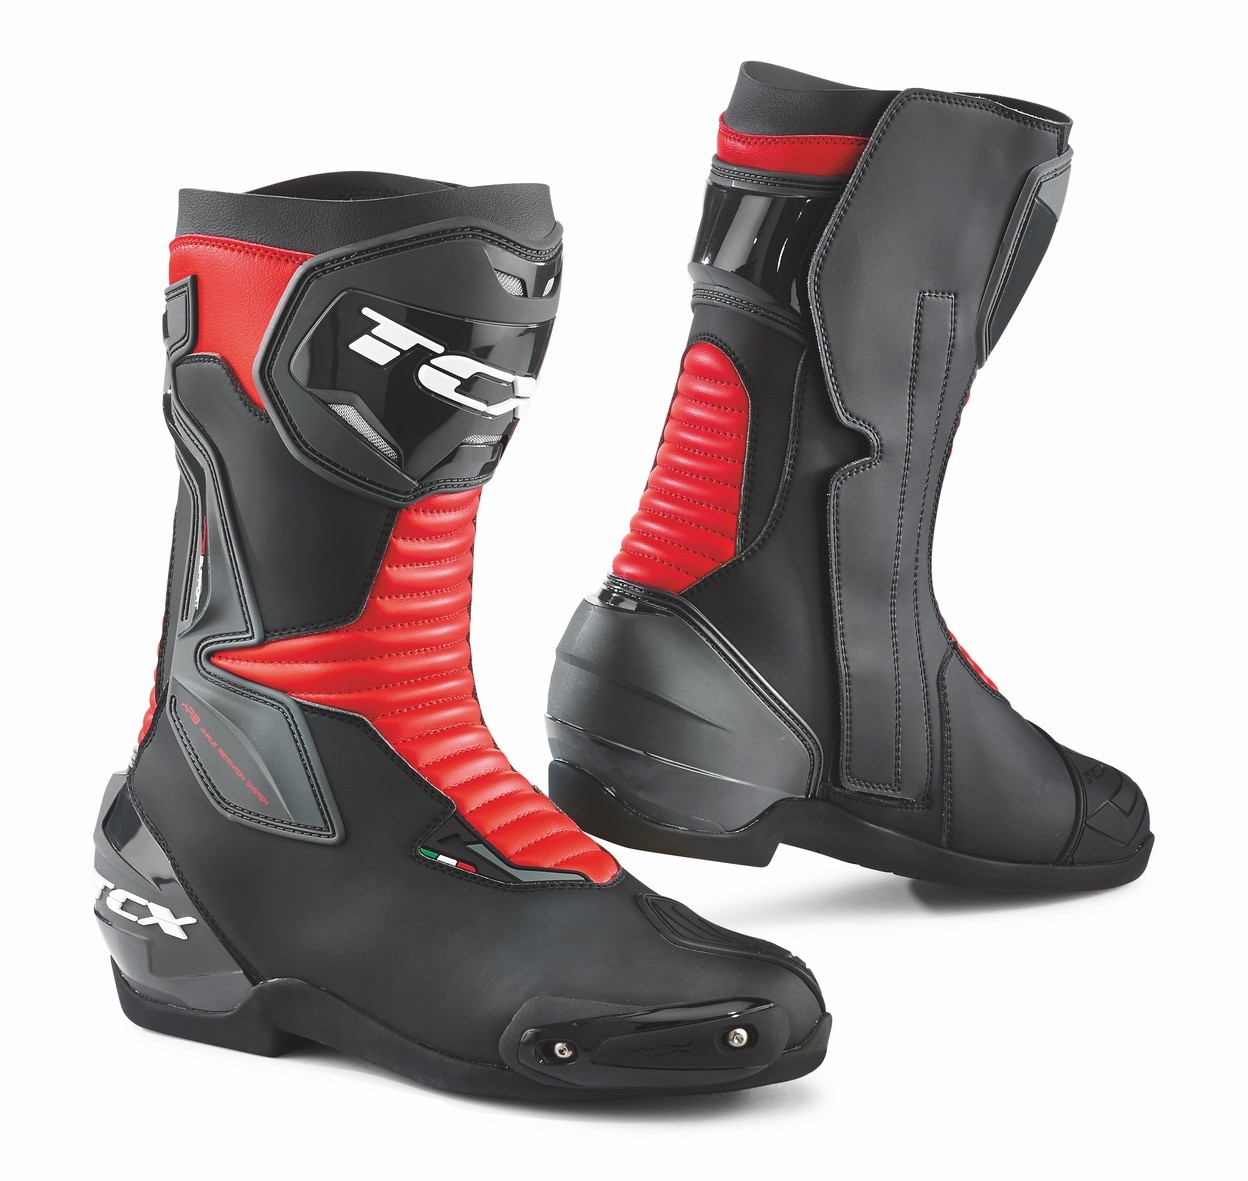 Batai TCX SP-MASTER (BLACK/RED)